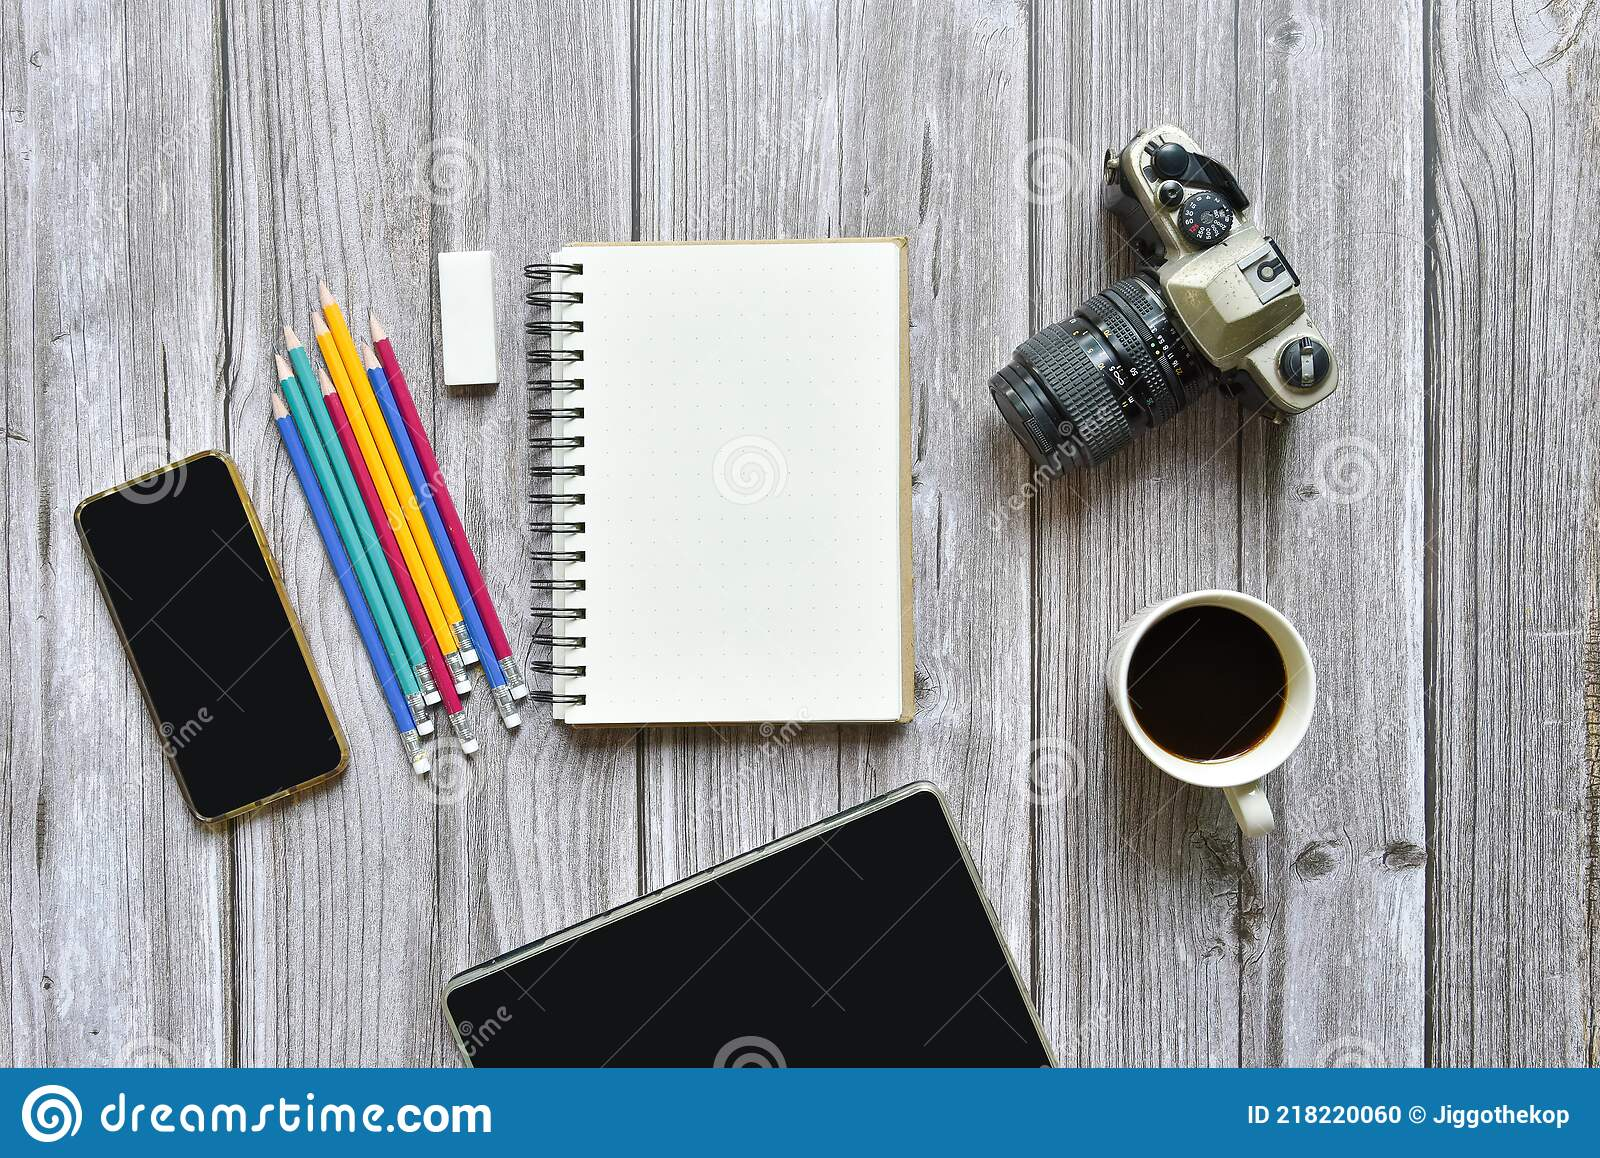 5 887 still life pencil notebook photos free royalty free stock photos from dreamstime